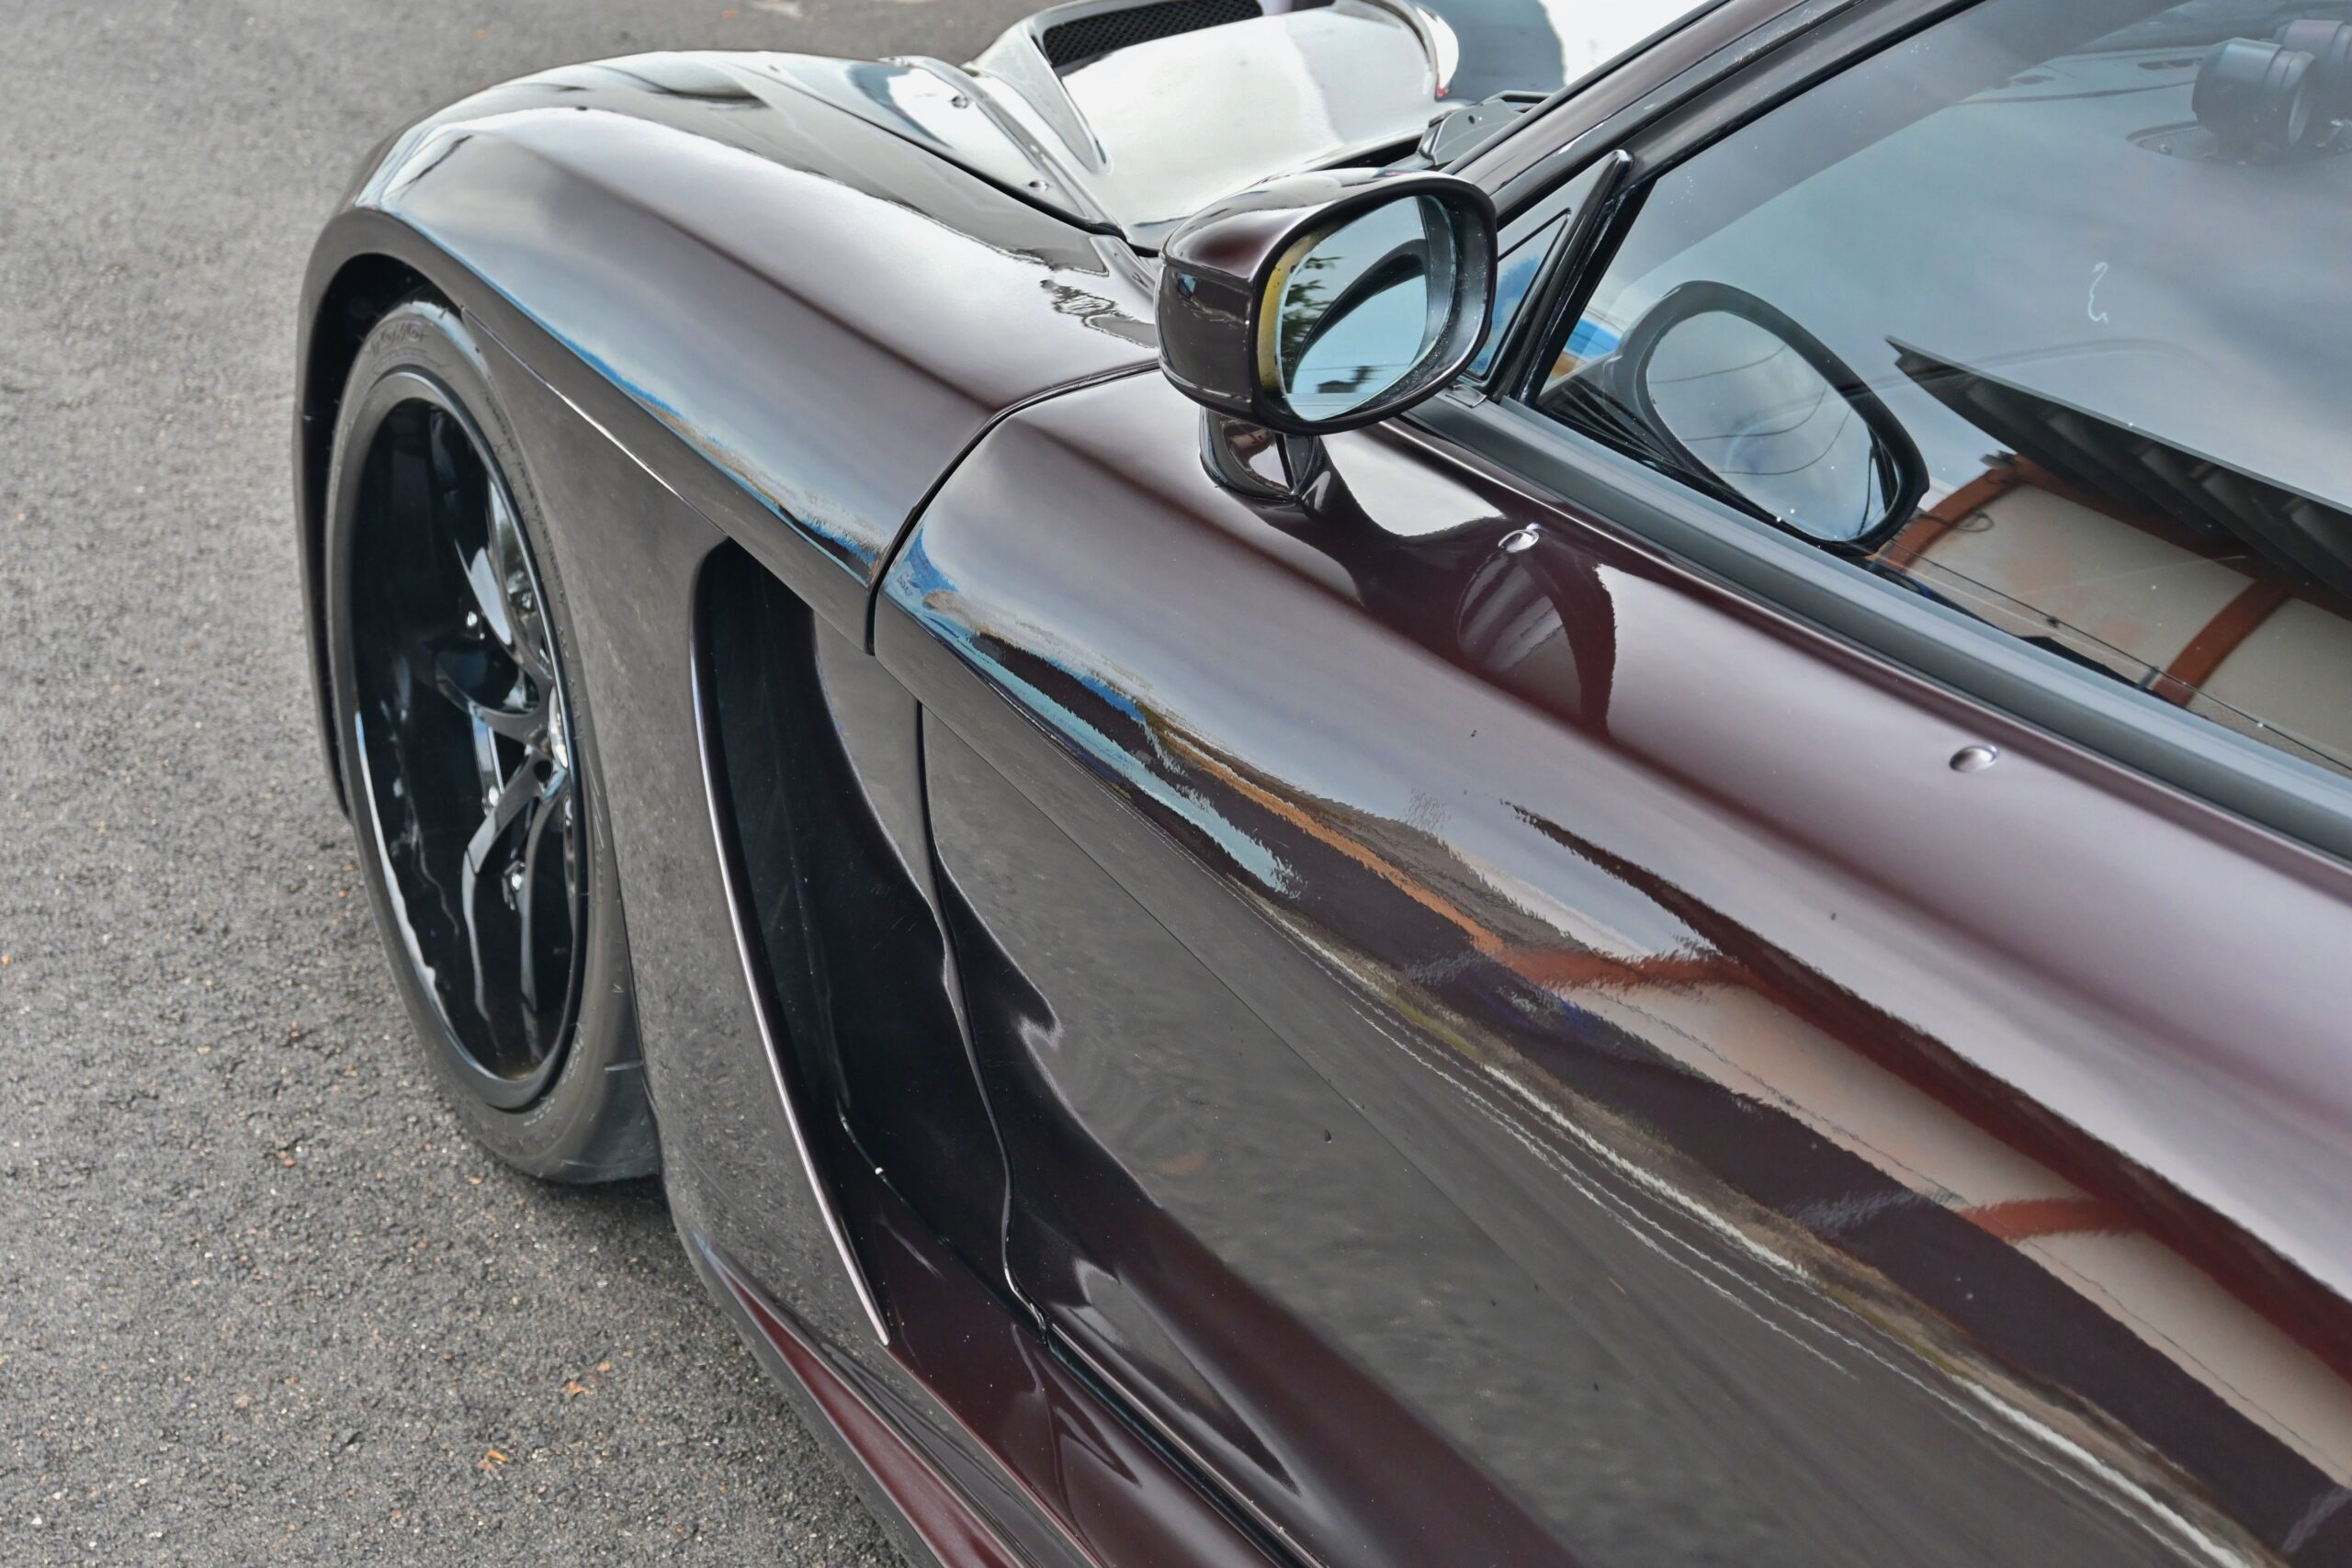 1995 Mazda RX-7 Fortune Veilside Rare Authentic Widebody / 20B 3 Rotor Single Turbo / Only 29k Miles